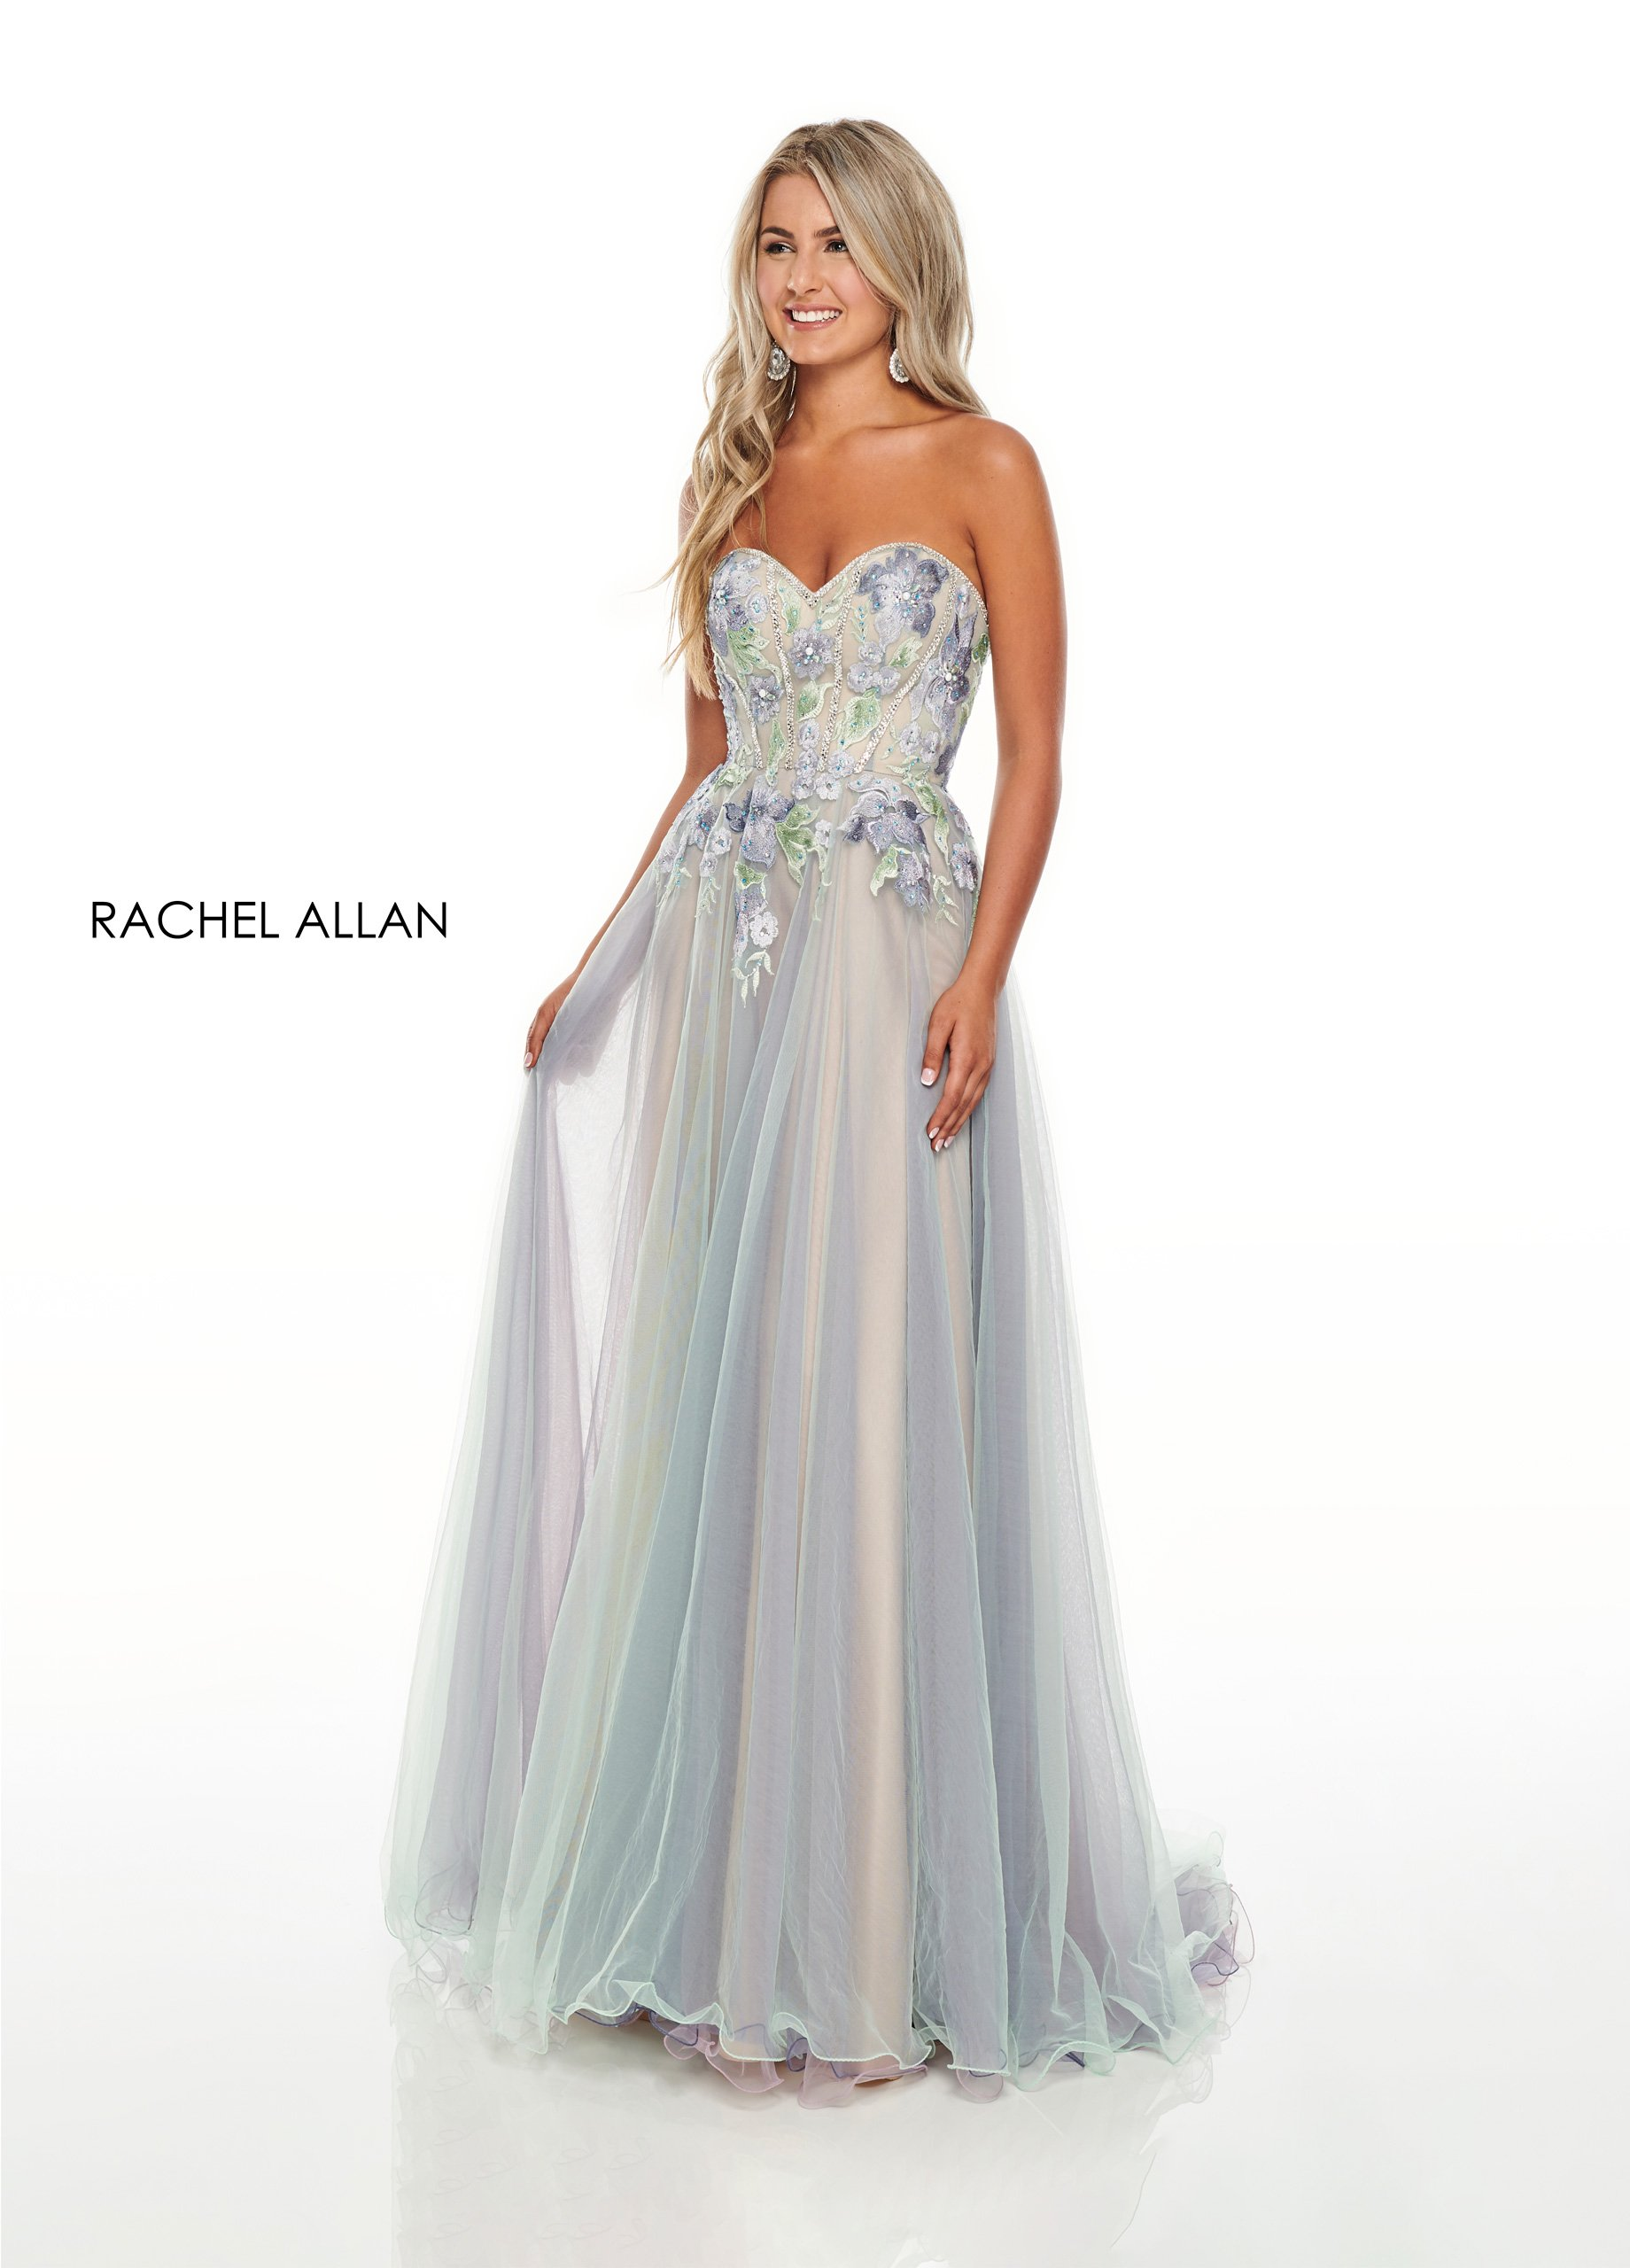 Strapless A-Line Prom Dresses in Mint Color